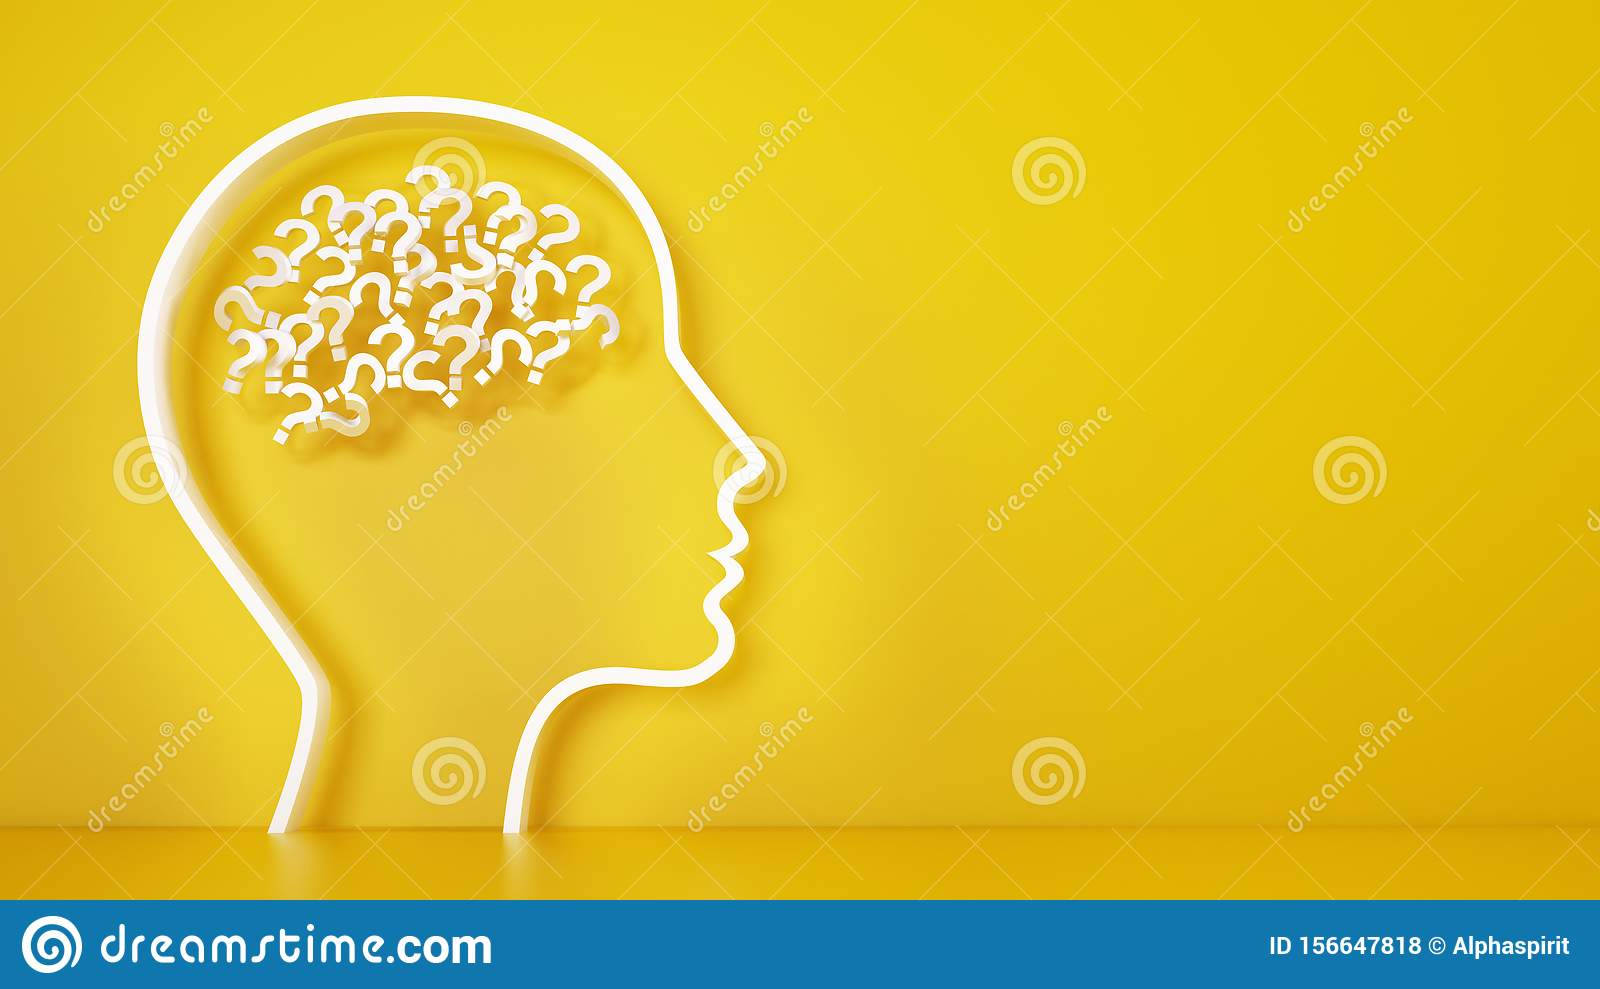 Big head with question marks inside brain on a yellow background. 3D Rendering